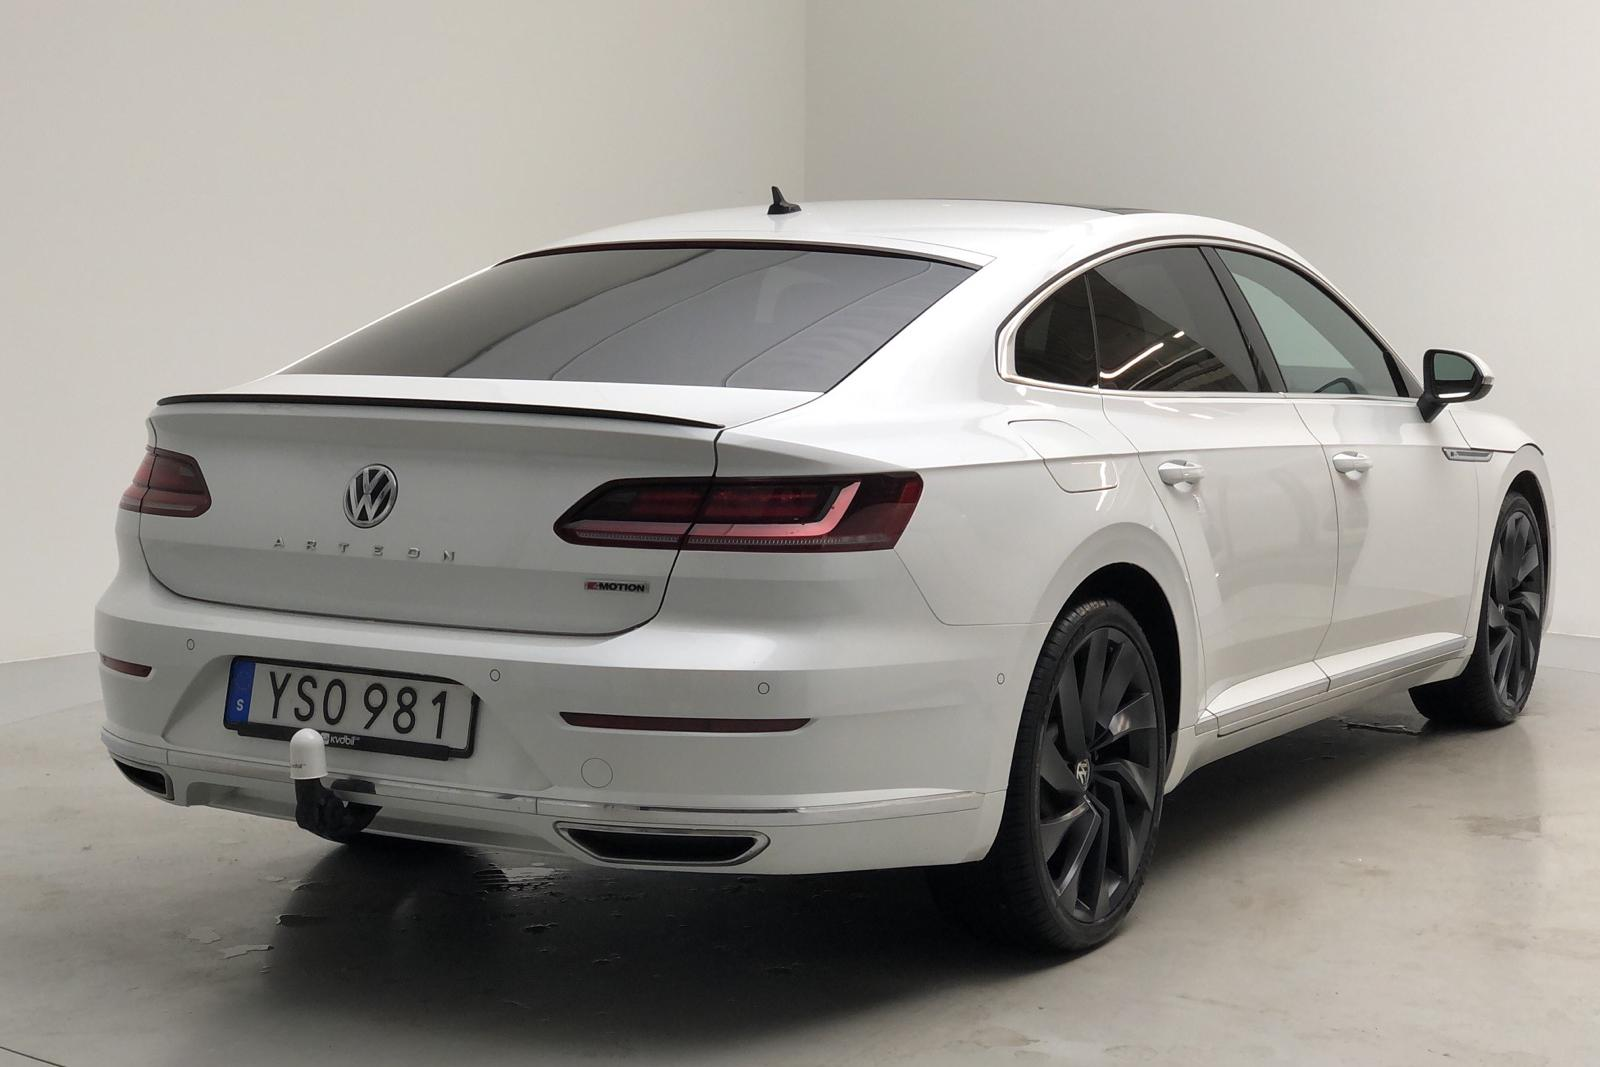 VW Arteon 2.0 TDI 4MOTION (240hk) - 0 km - Automatic - white - 2018